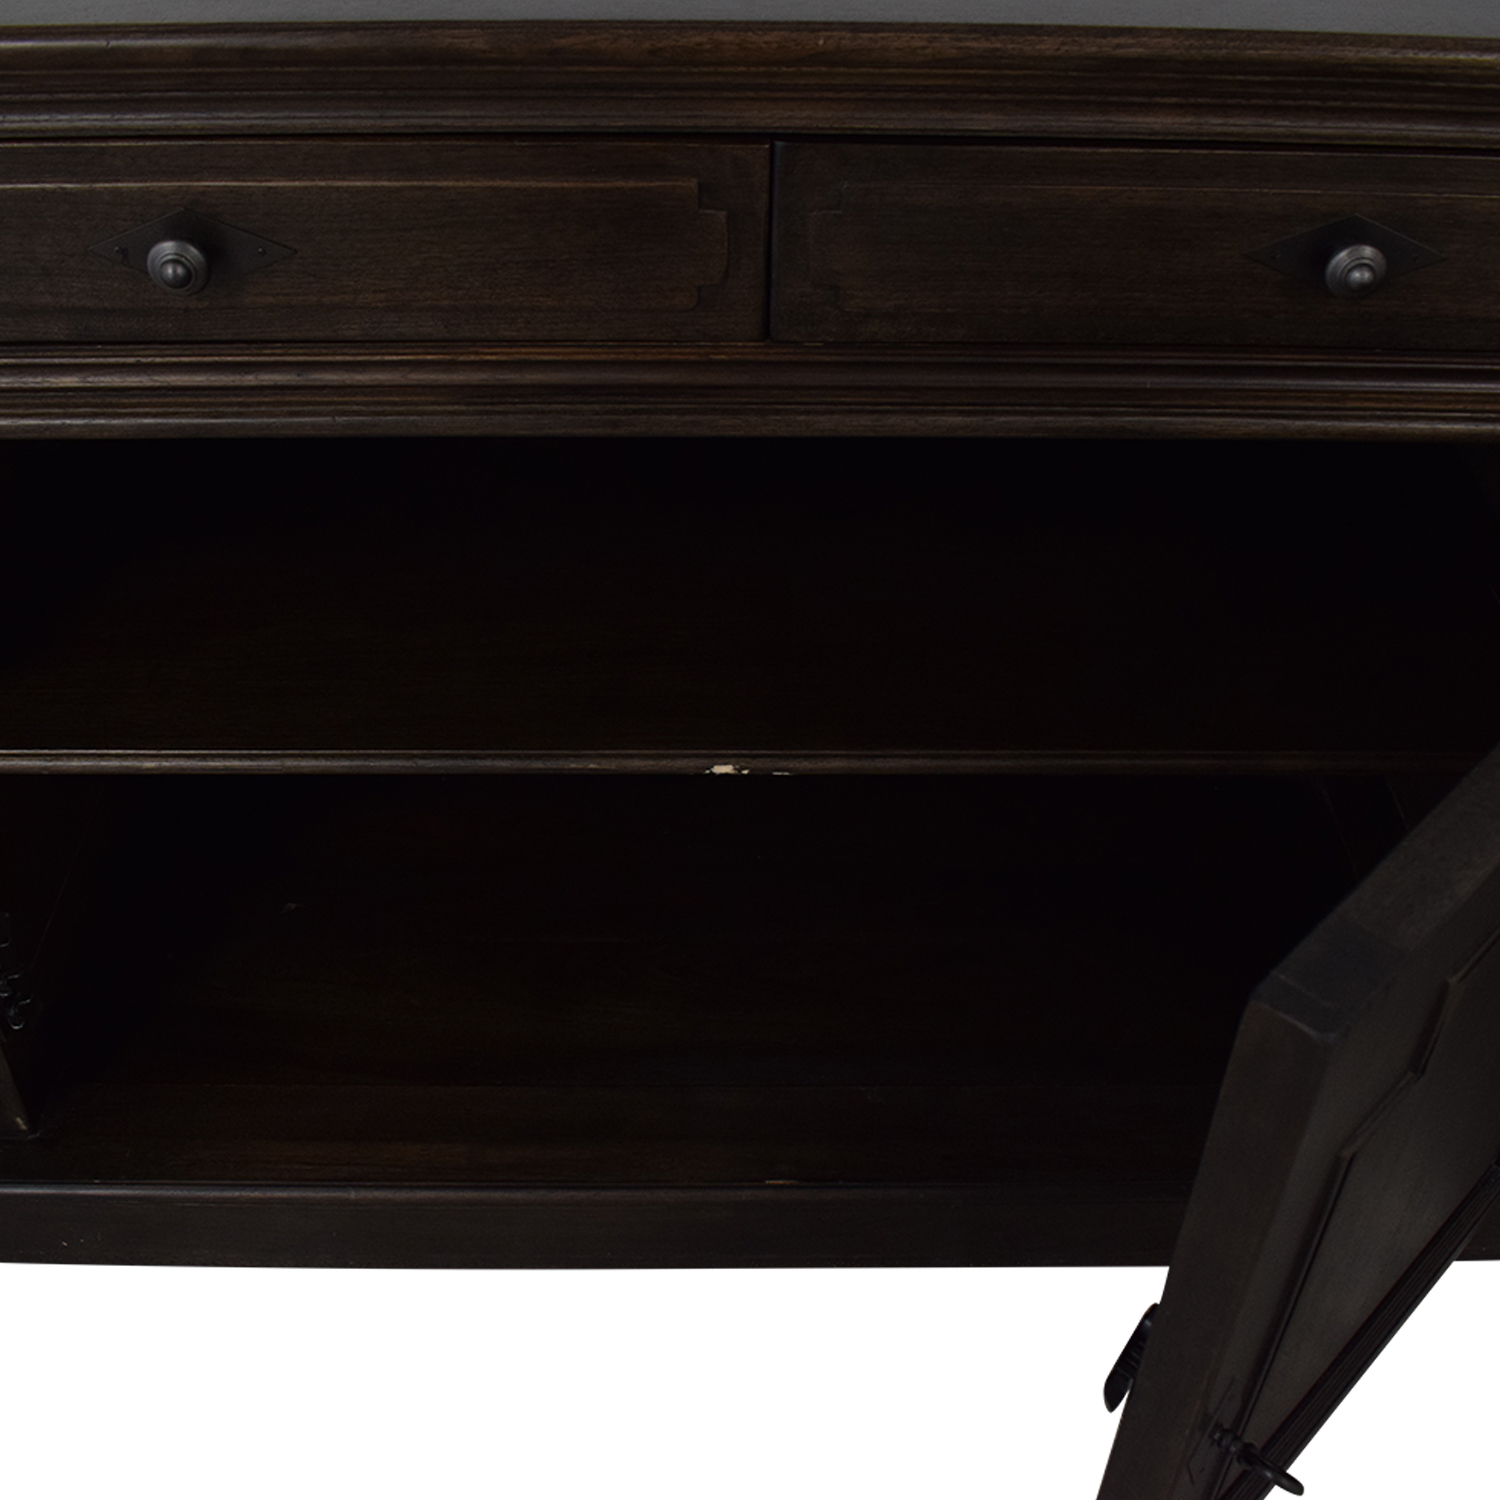 Restoration Hardware Restoration Hardware Montpellier Sideboard With Drawers used